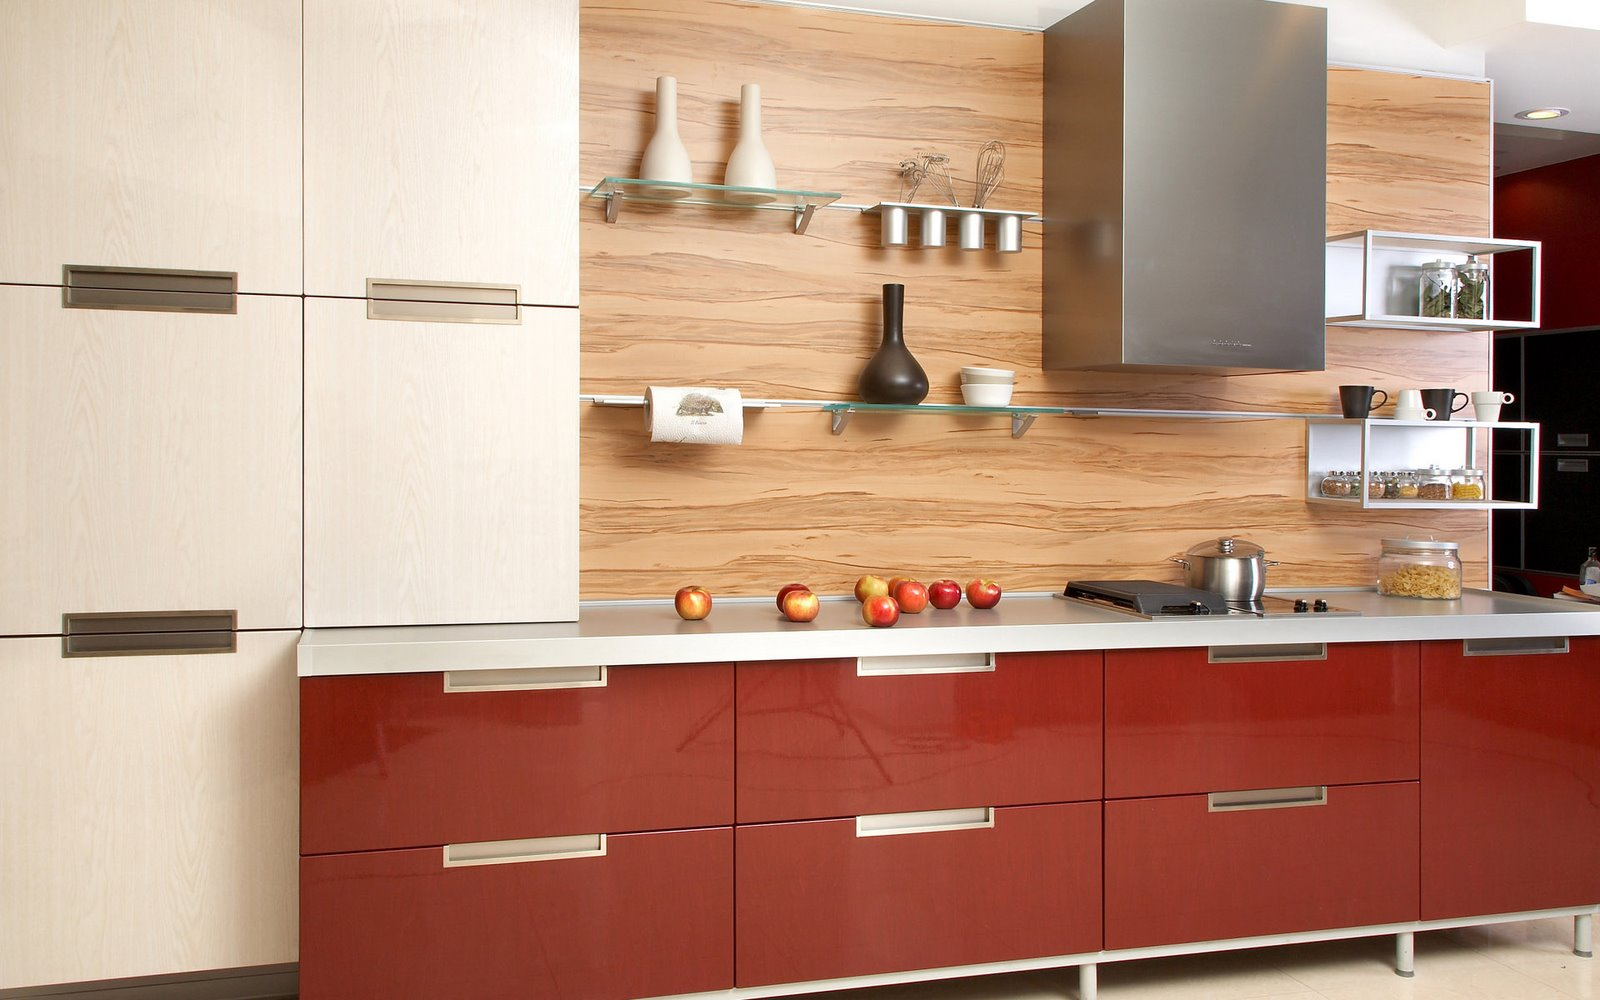 Modern Kitchen Backsplash Design